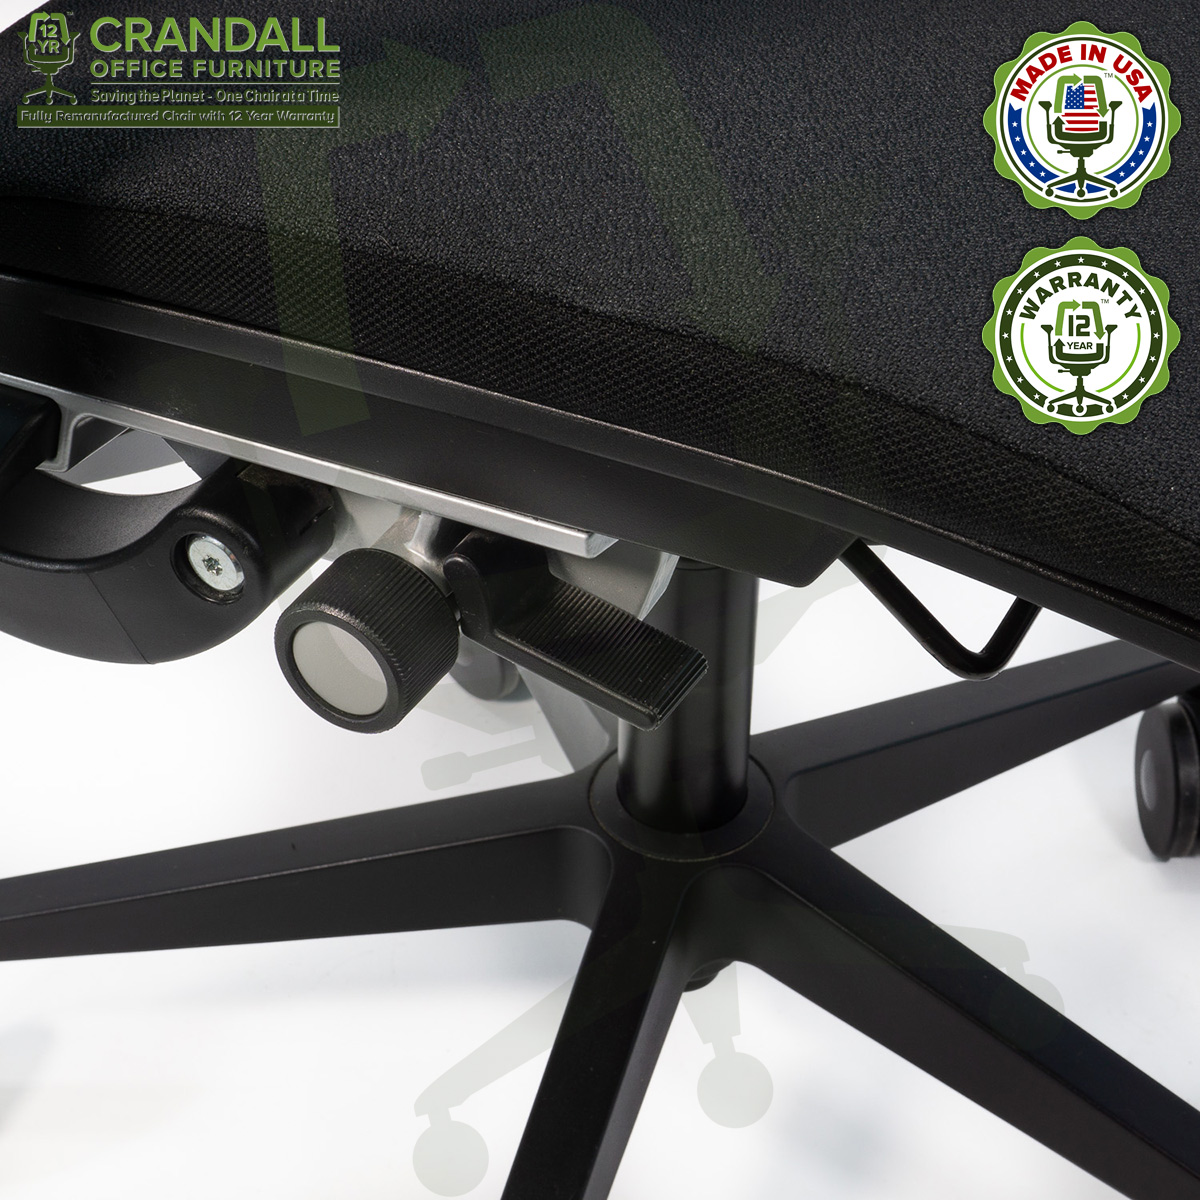 Crandall Office Furniture Remanufactured Steelcase Think Chair with 12 Year Warranty - 06